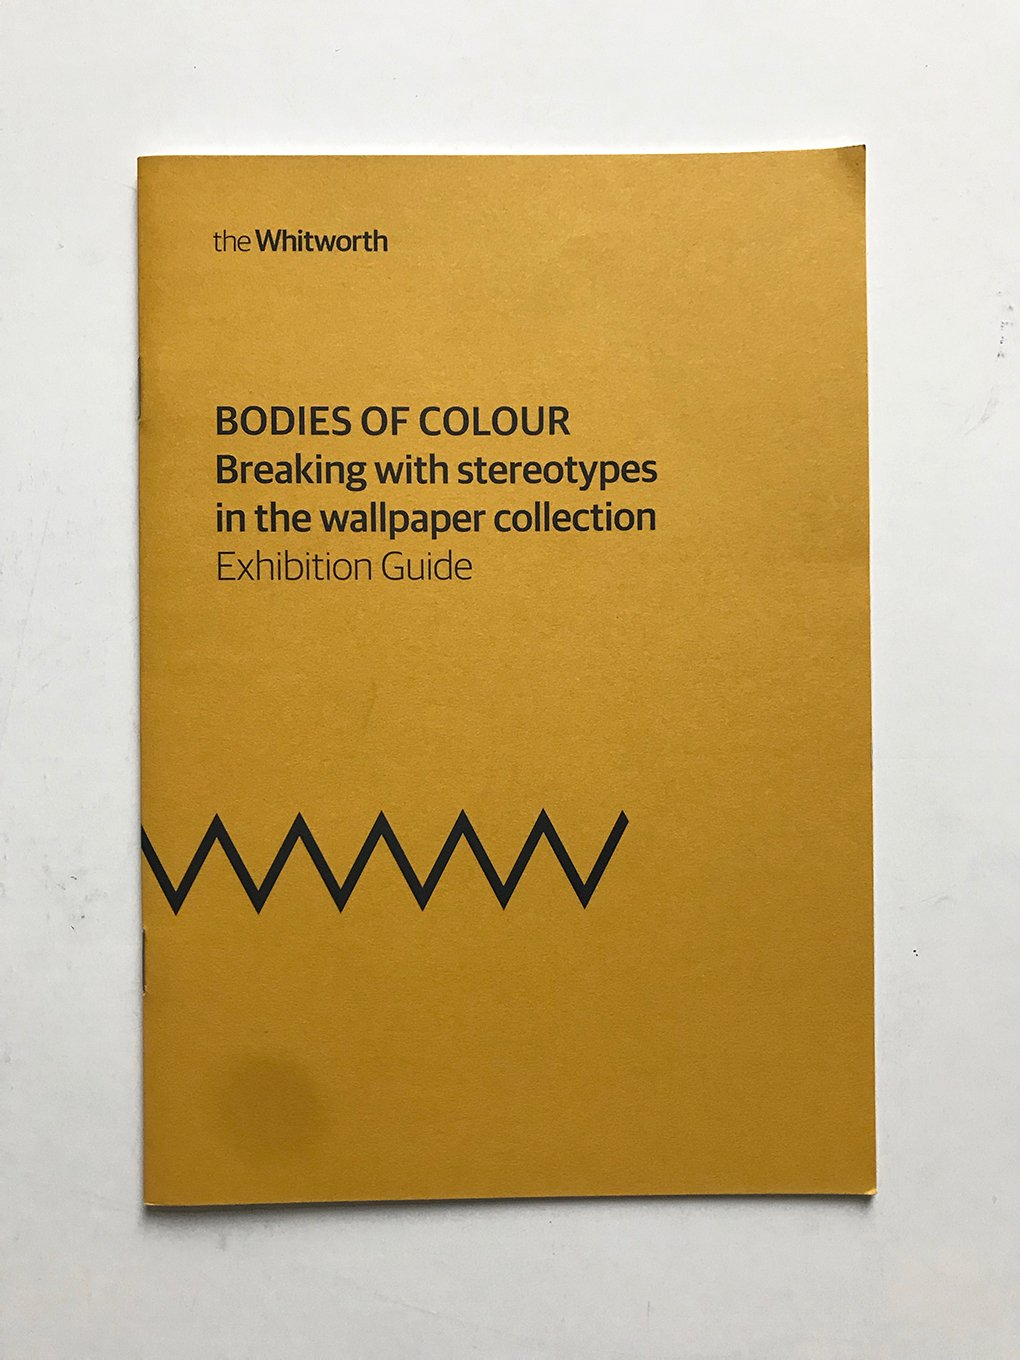 Bodies of Colour exhibition at The Whitworth, Manchester - Exhibition guide